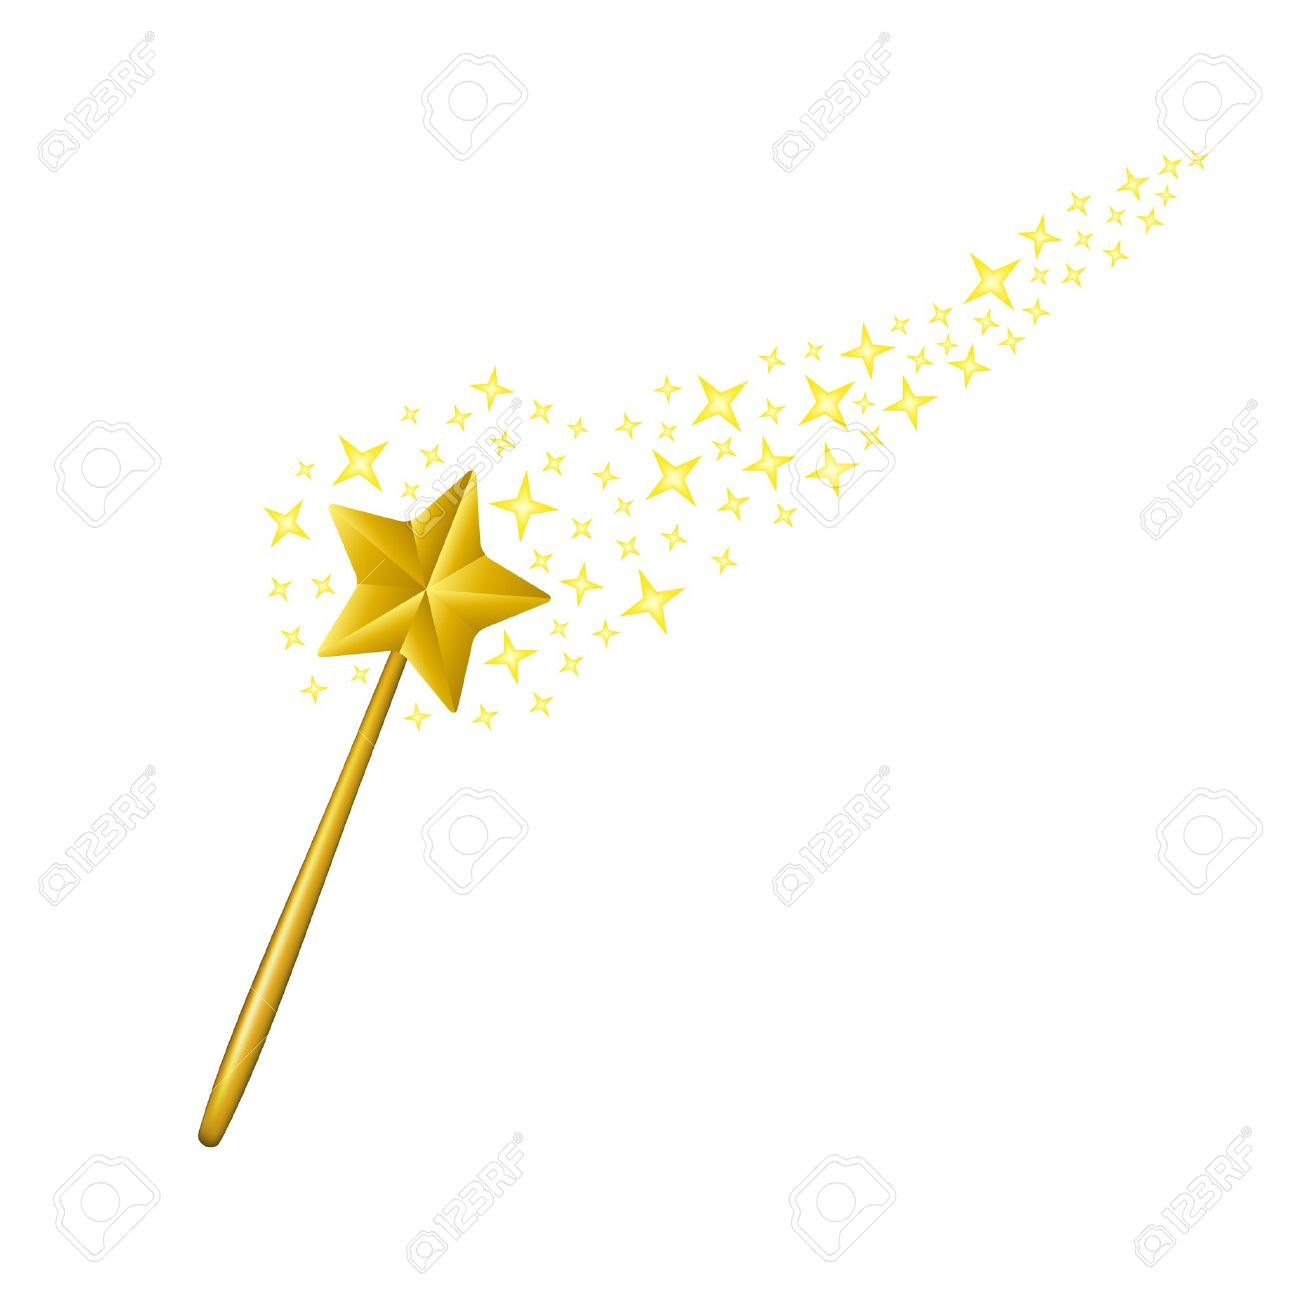 Magic wand Stock Vector - 14886980